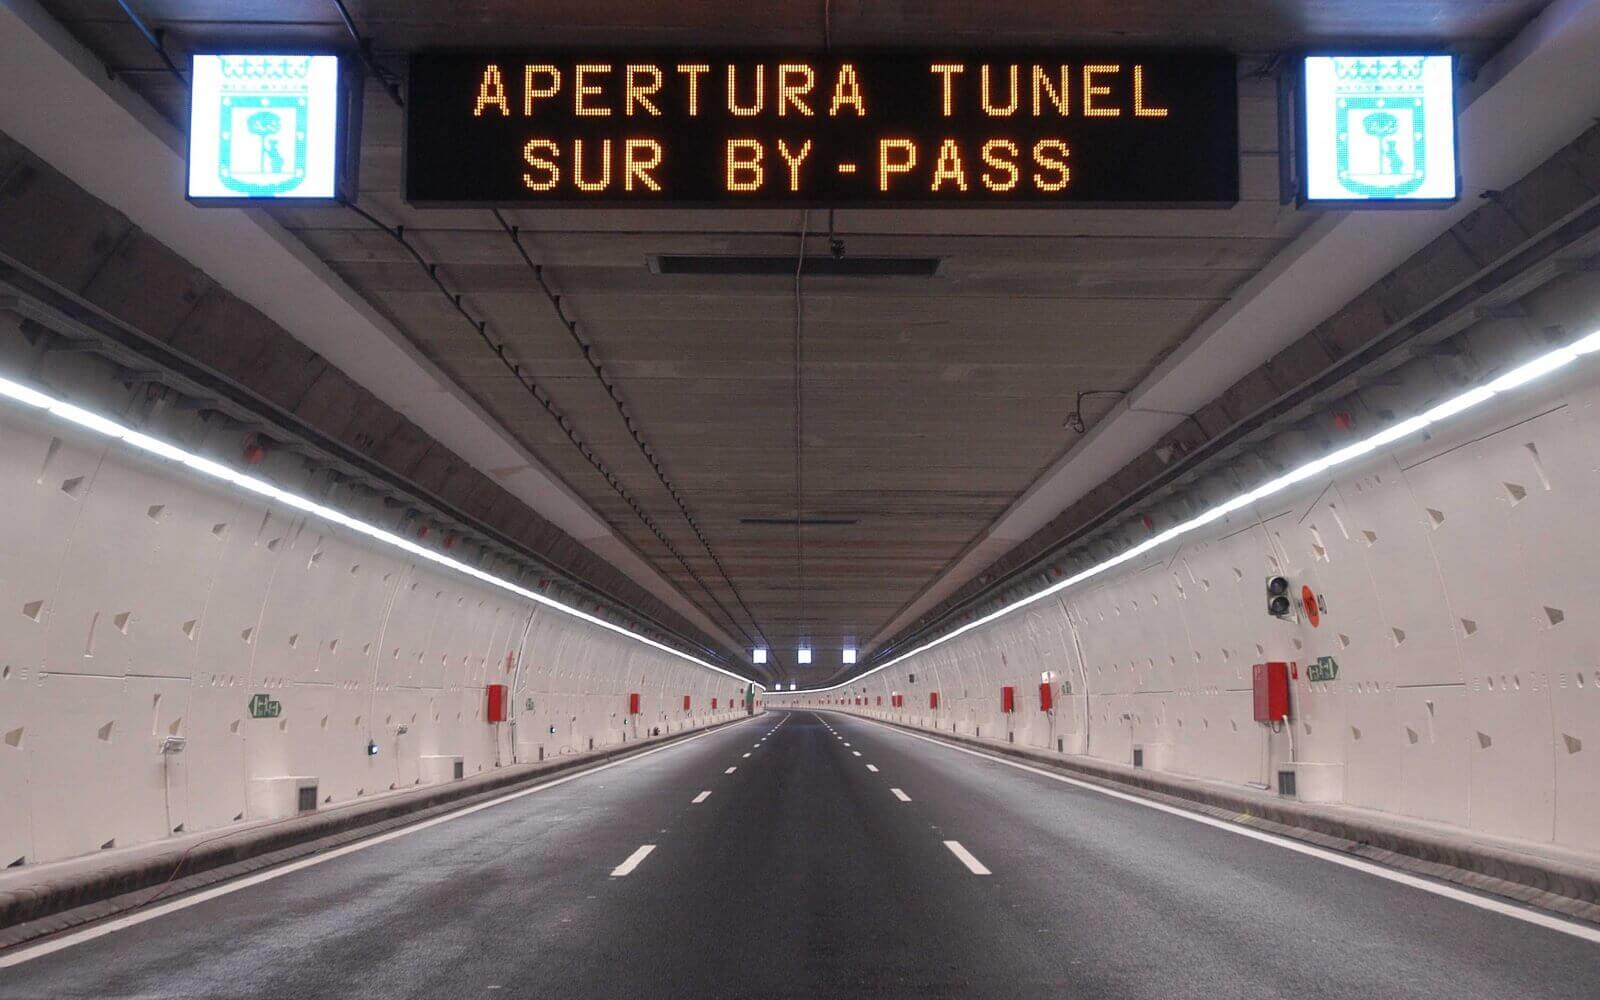 Túnel By - Pass Sur de la M-30